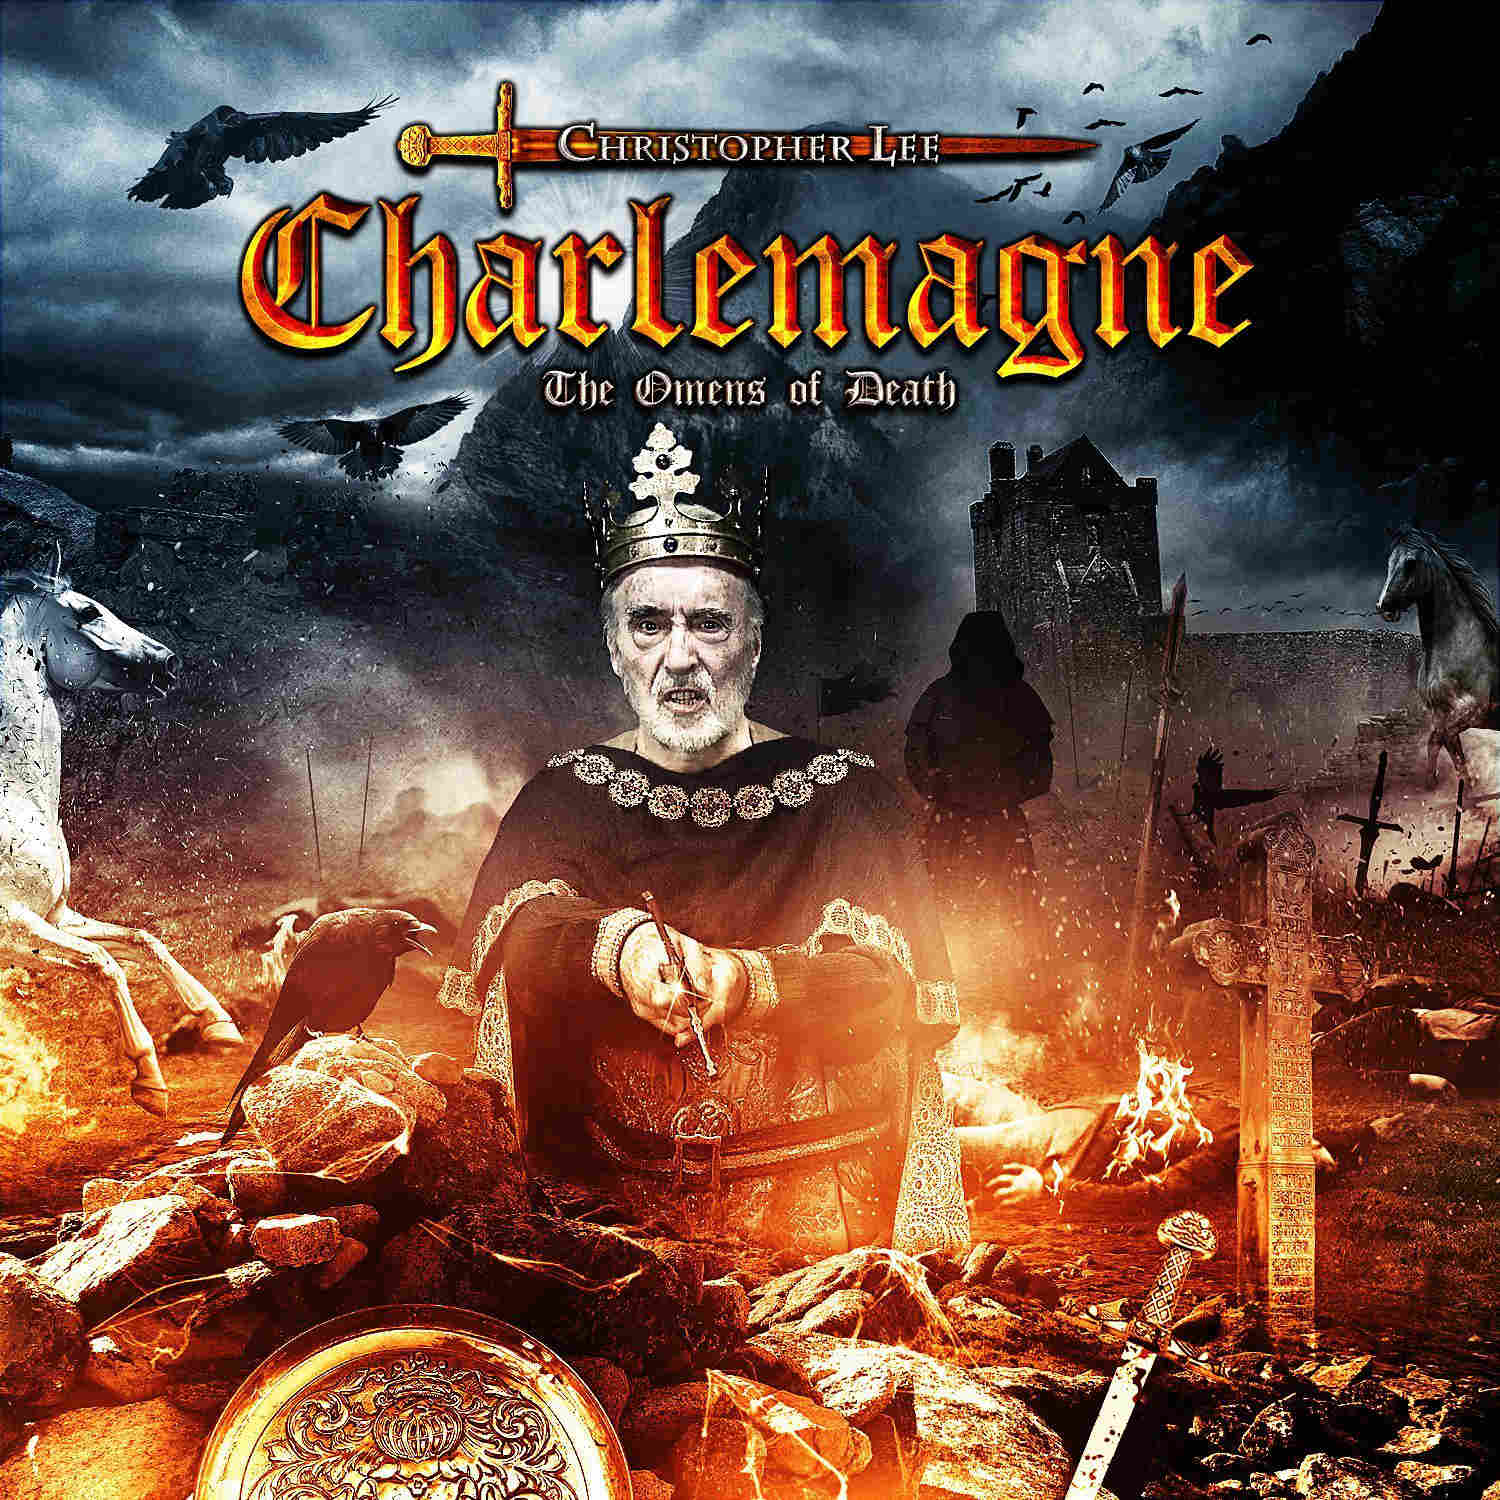 Charlemagne - The Omens of Death Boek omslag